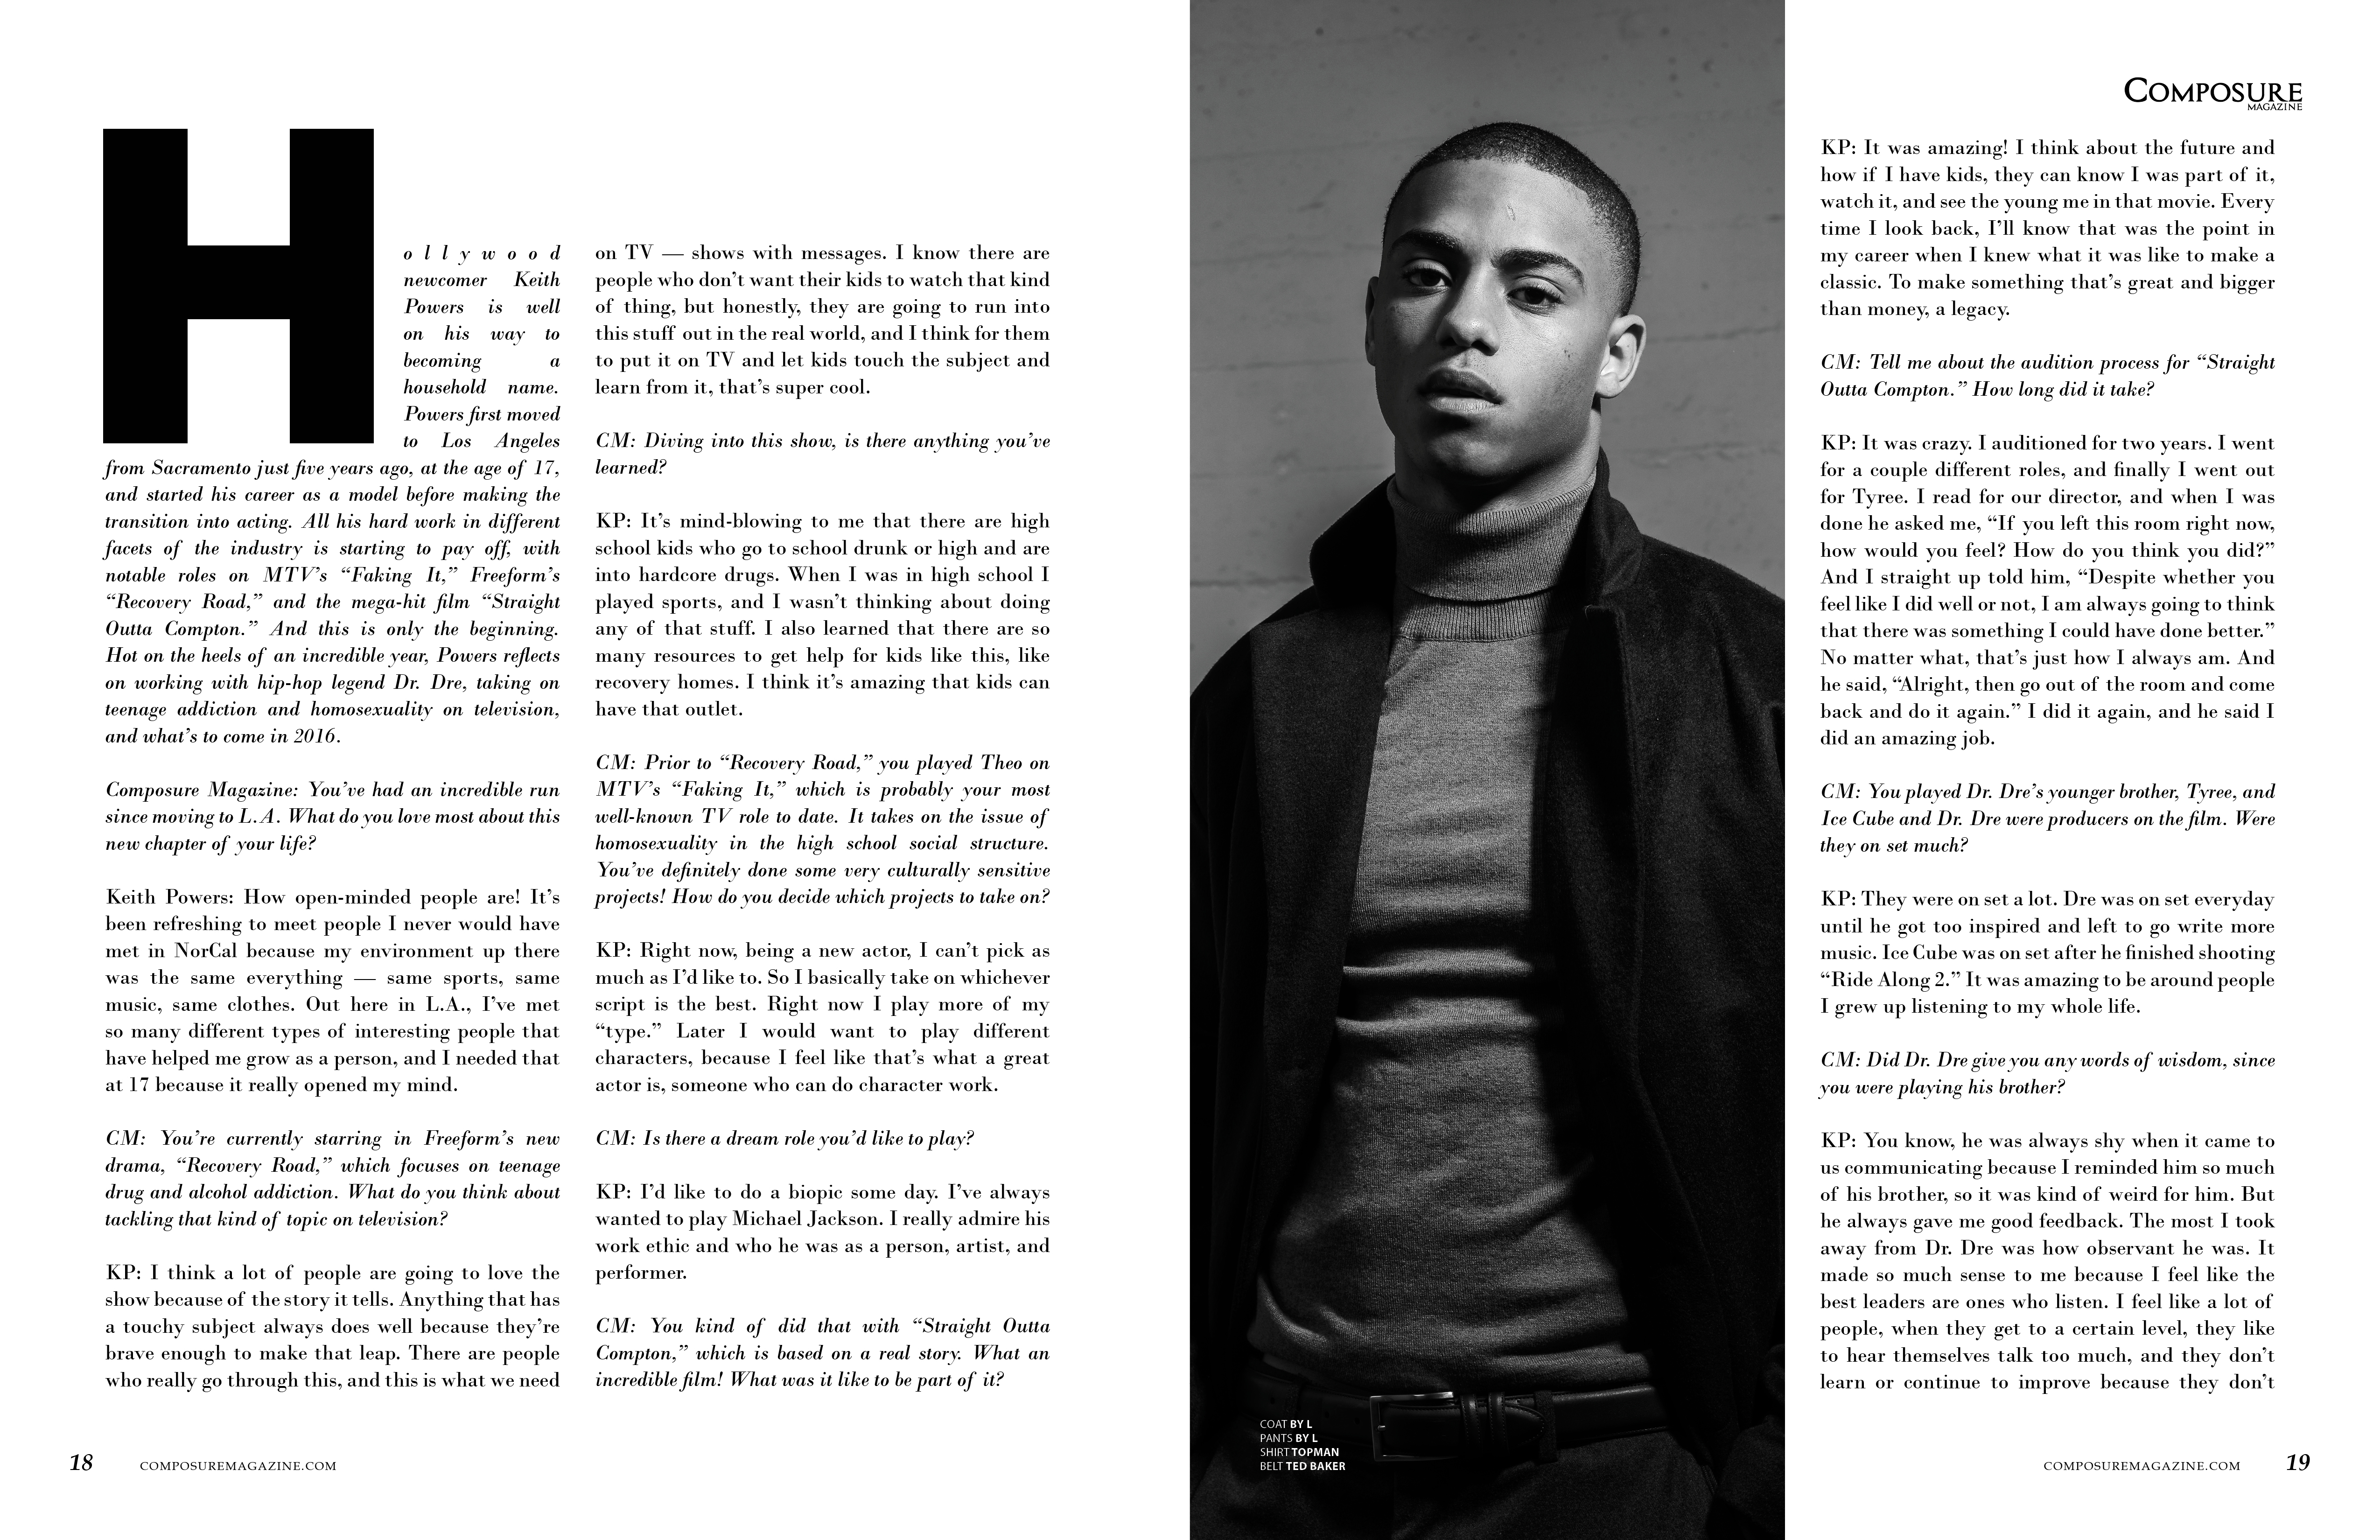 Keith Powers - Composure Magazine